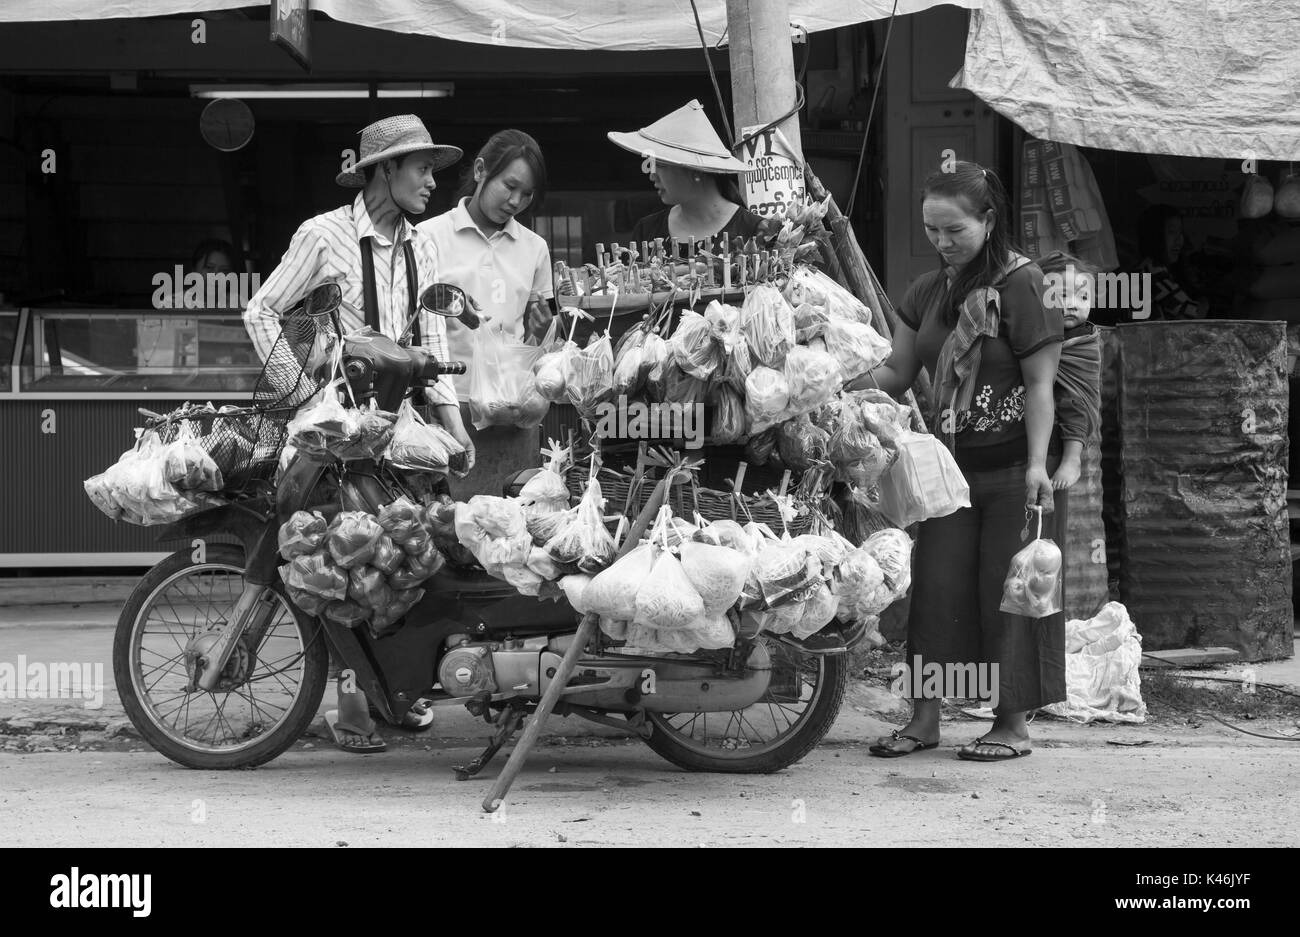 Shoppers at roadside motorcycle stall, Hsipaw, Myanmar - Stock Image